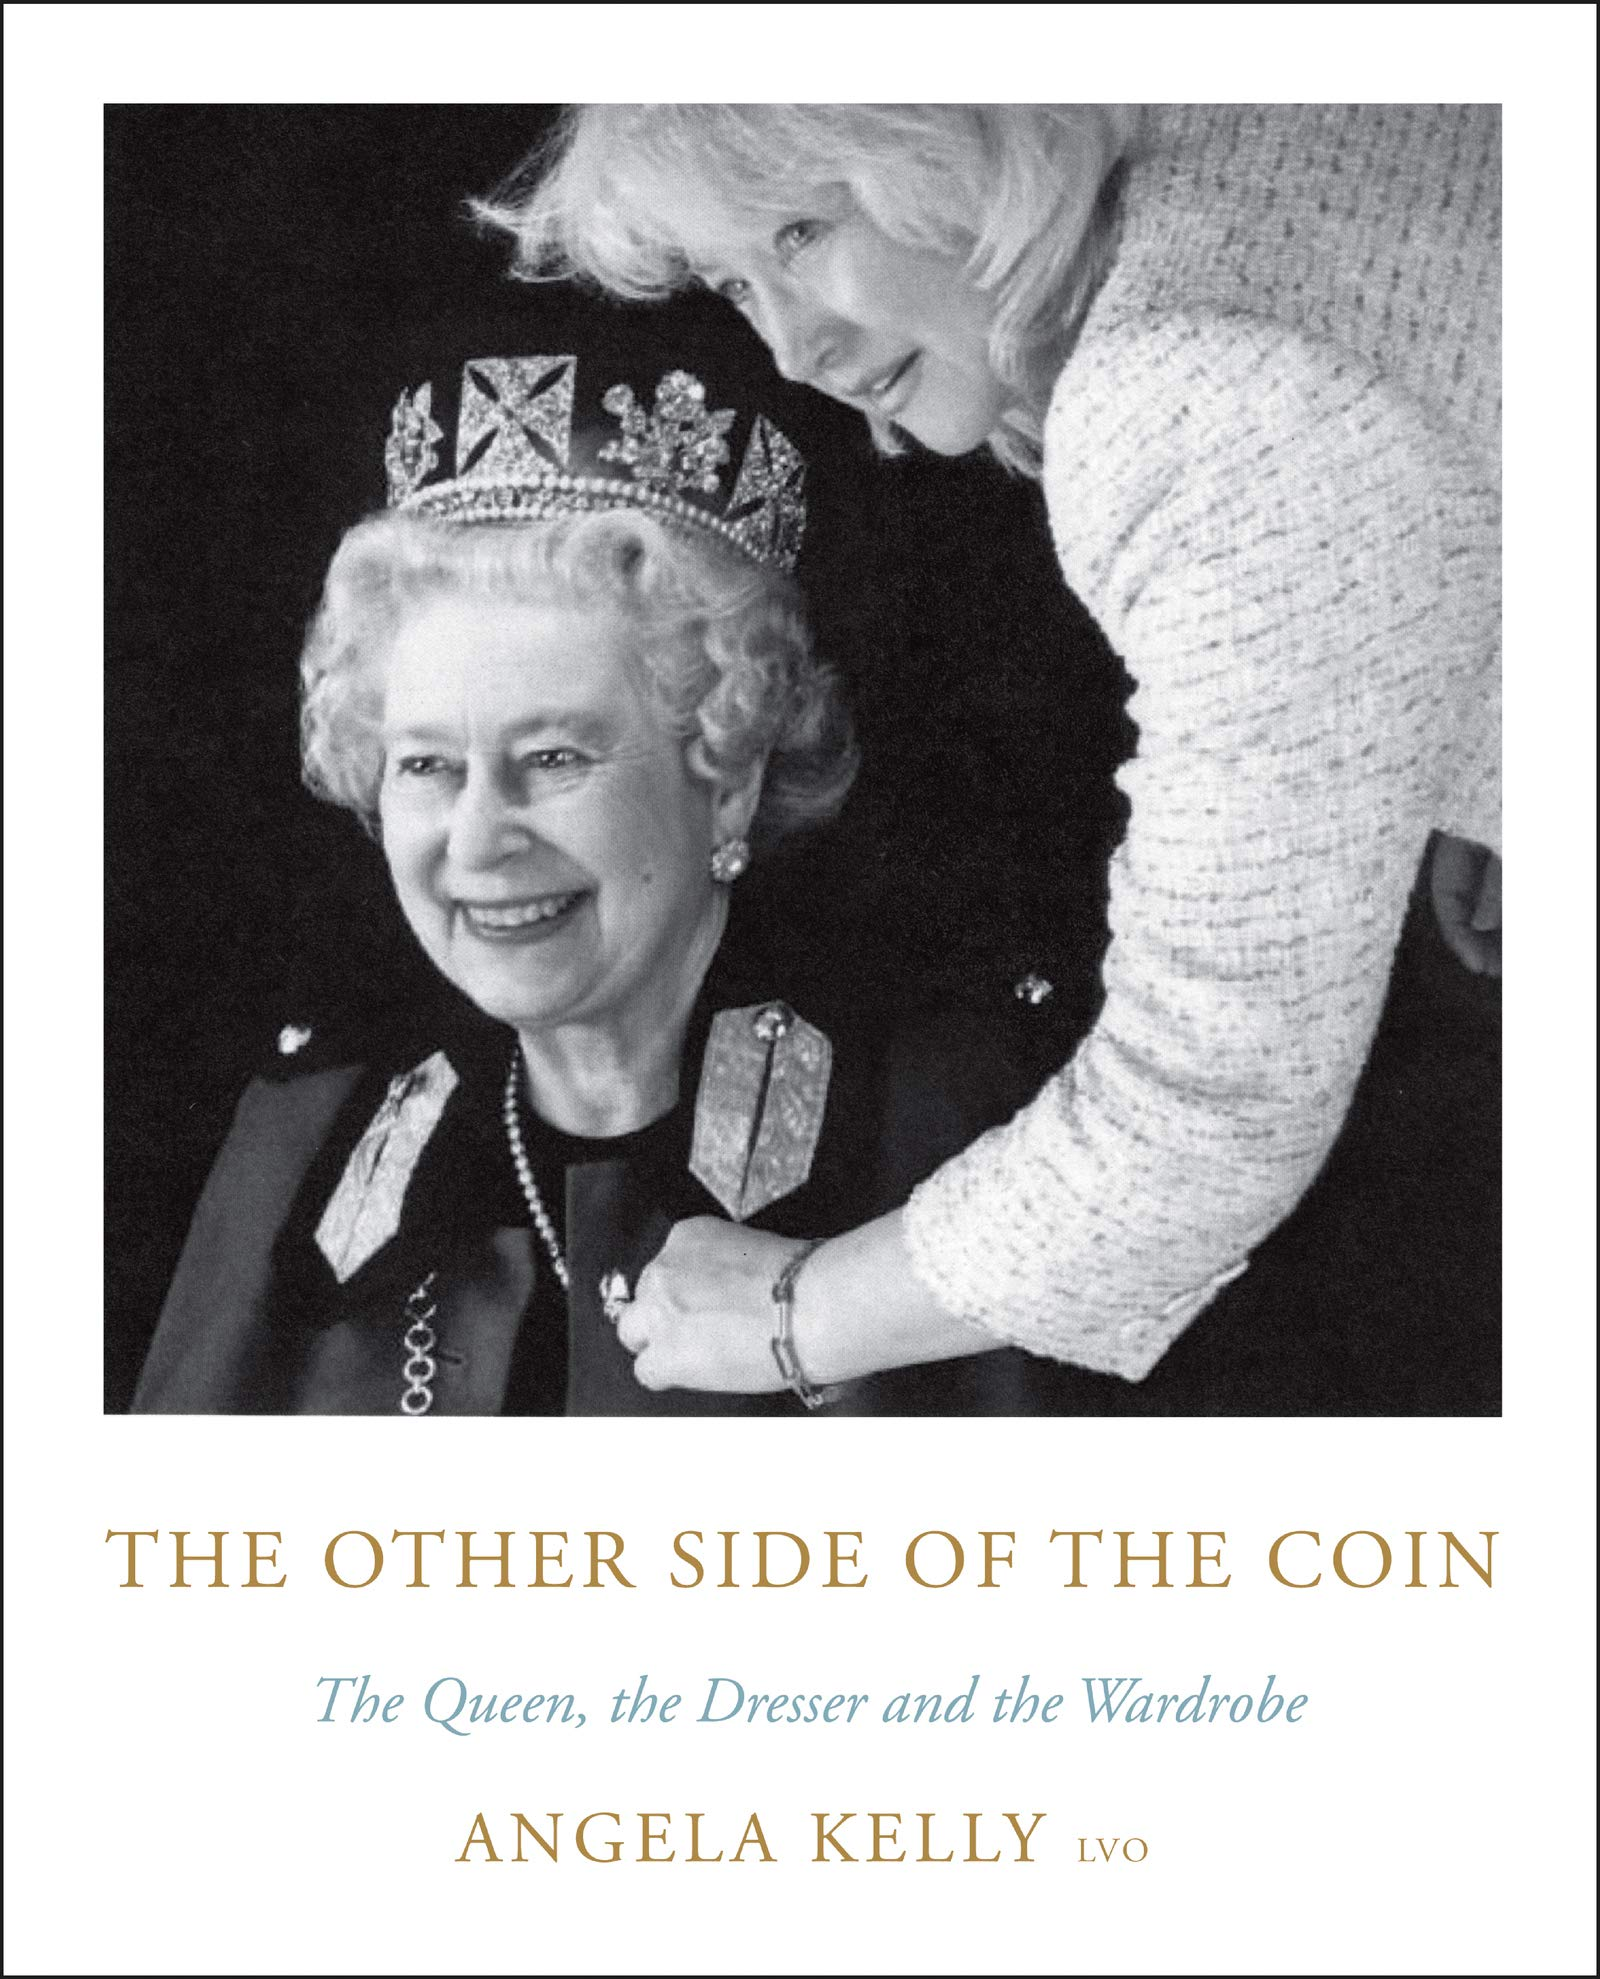 The Other Side of the Coin: The Queen, the Dresser and the Wardrobe by Harper